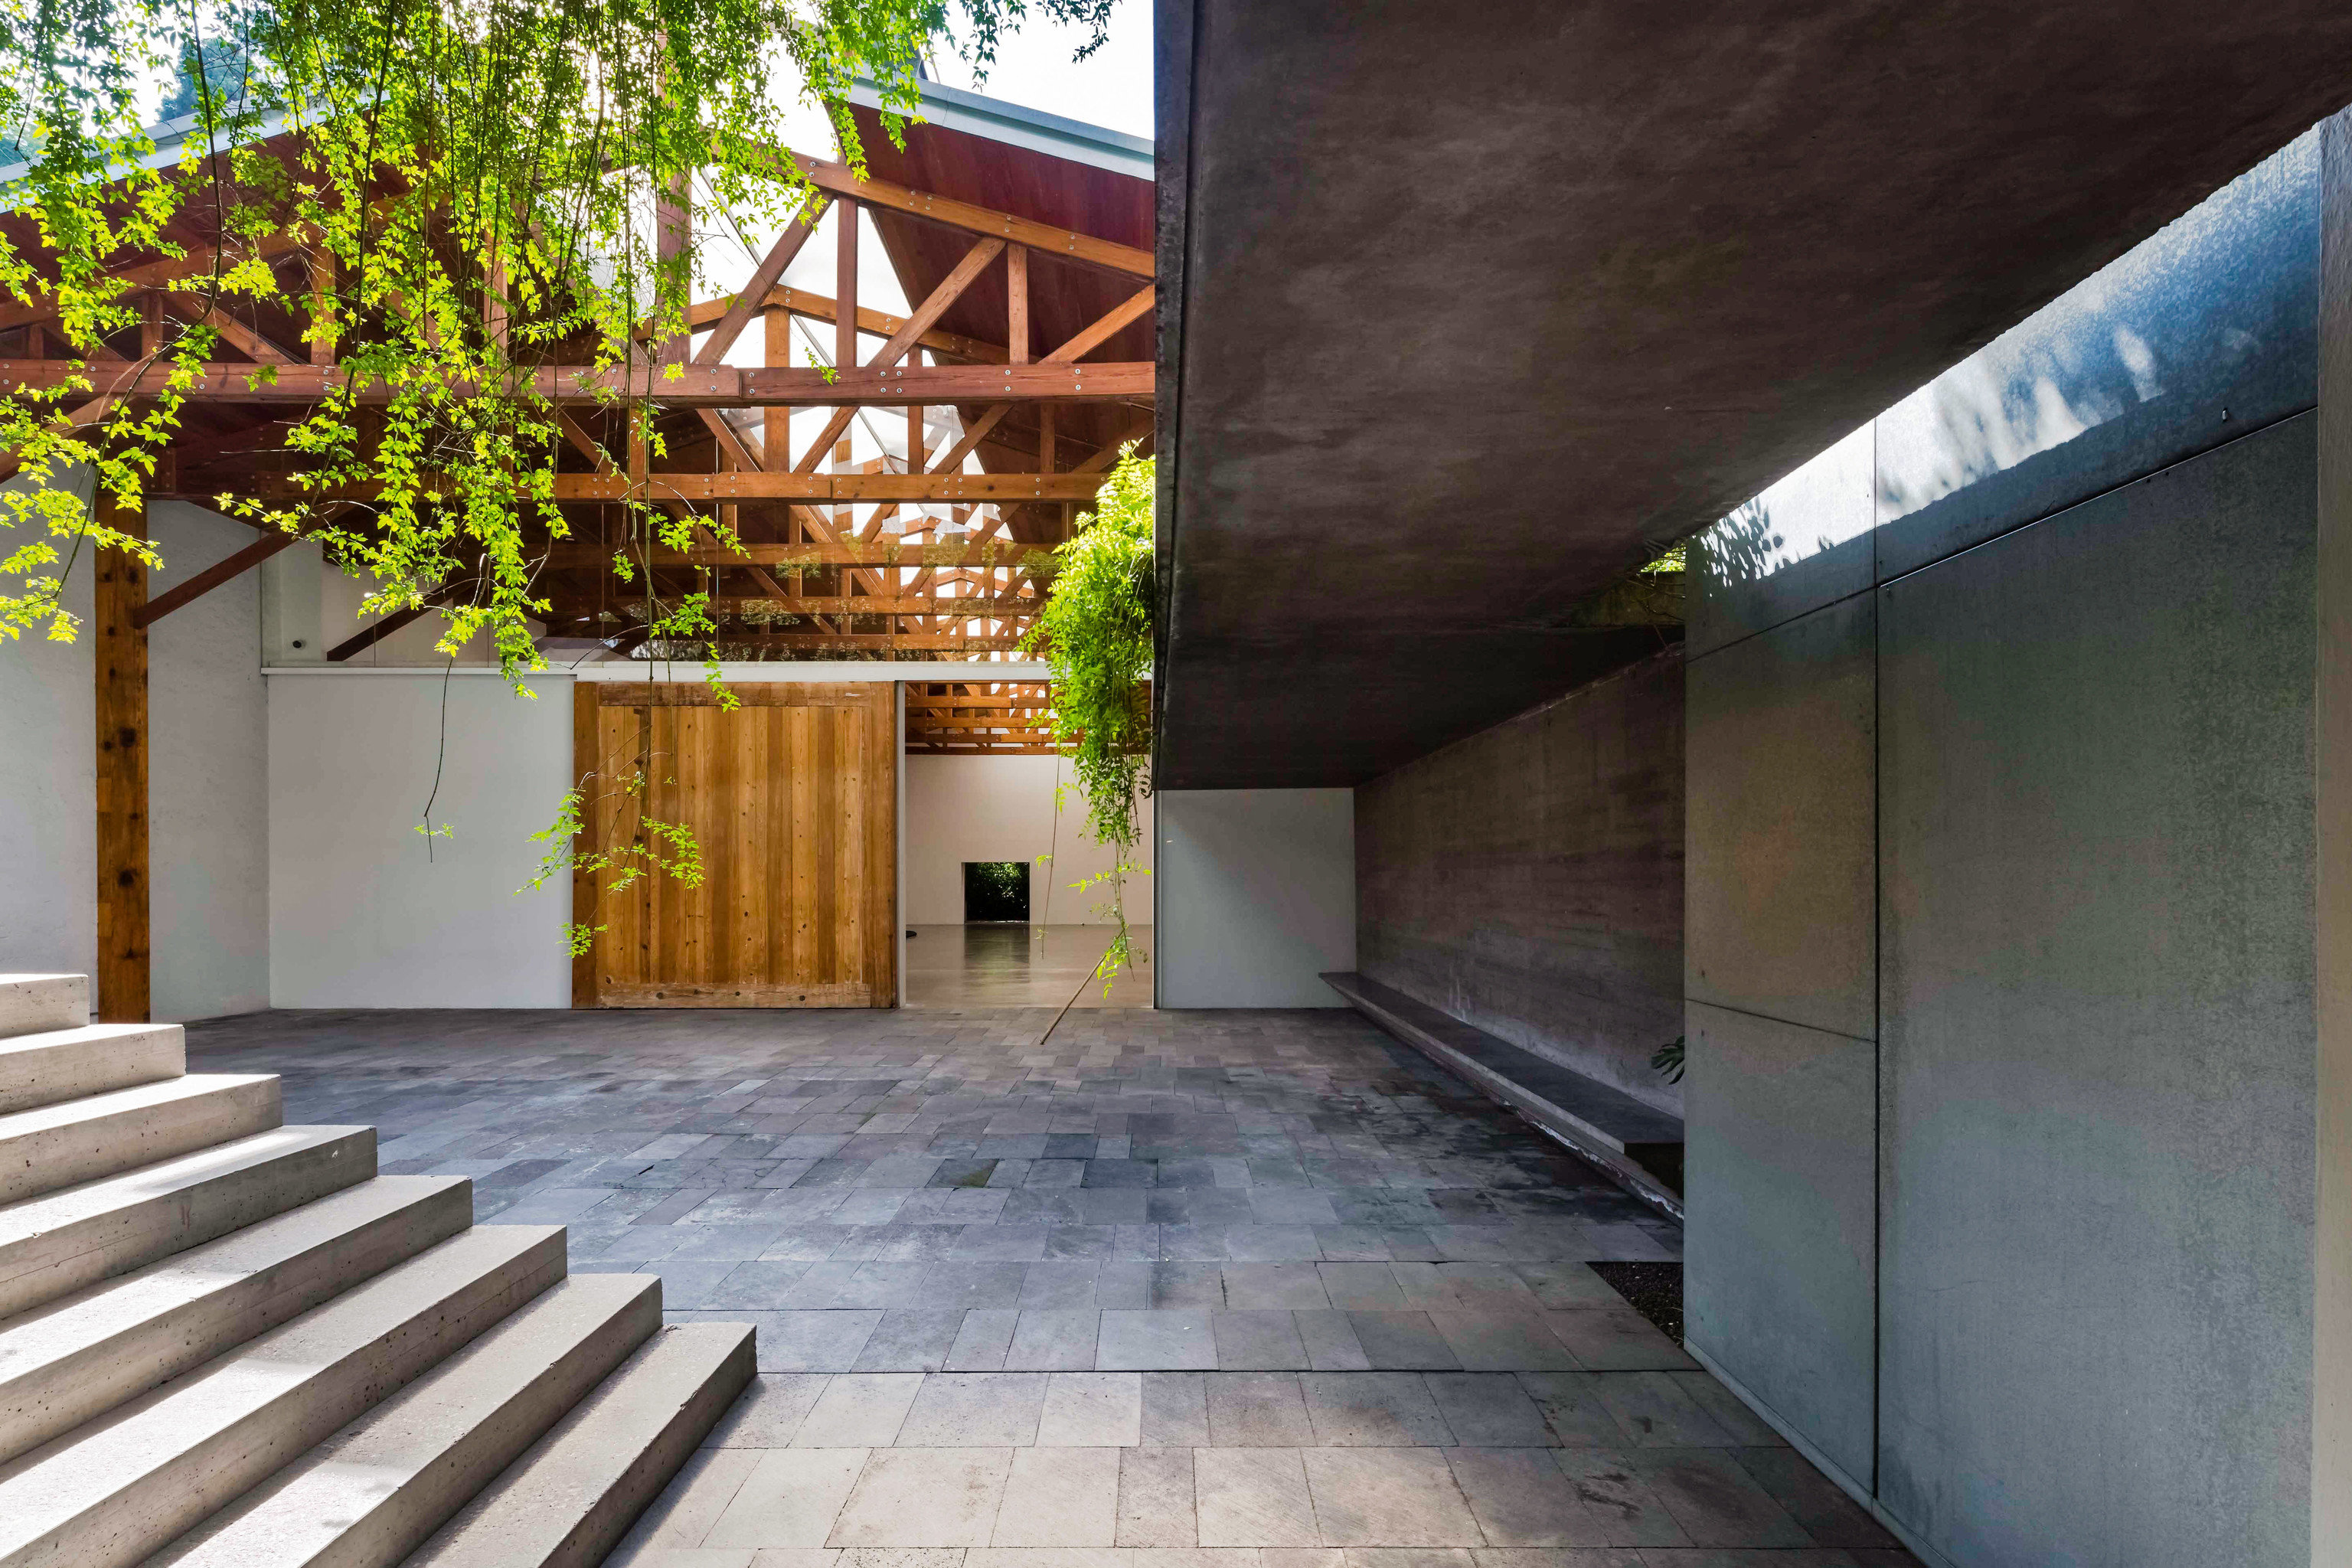 City Mexico City Trip Ideas building property outdoor house Architecture Courtyard real estate roof facade daylighting estate outdoor structure backyard stone